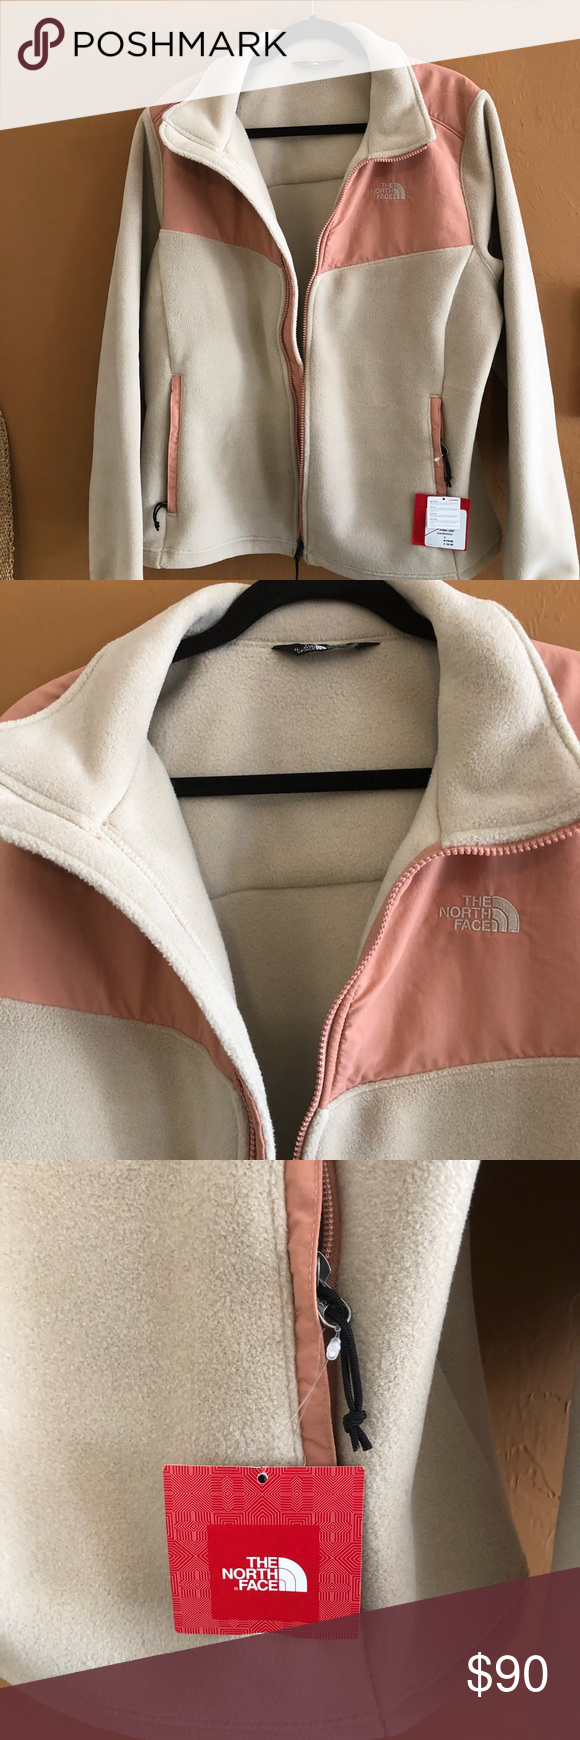 The North Face Fleece Jacket Xl North Face Fleece Jacket Fleece Jacket Womens North Face Fleece [ 1740 x 580 Pixel ]